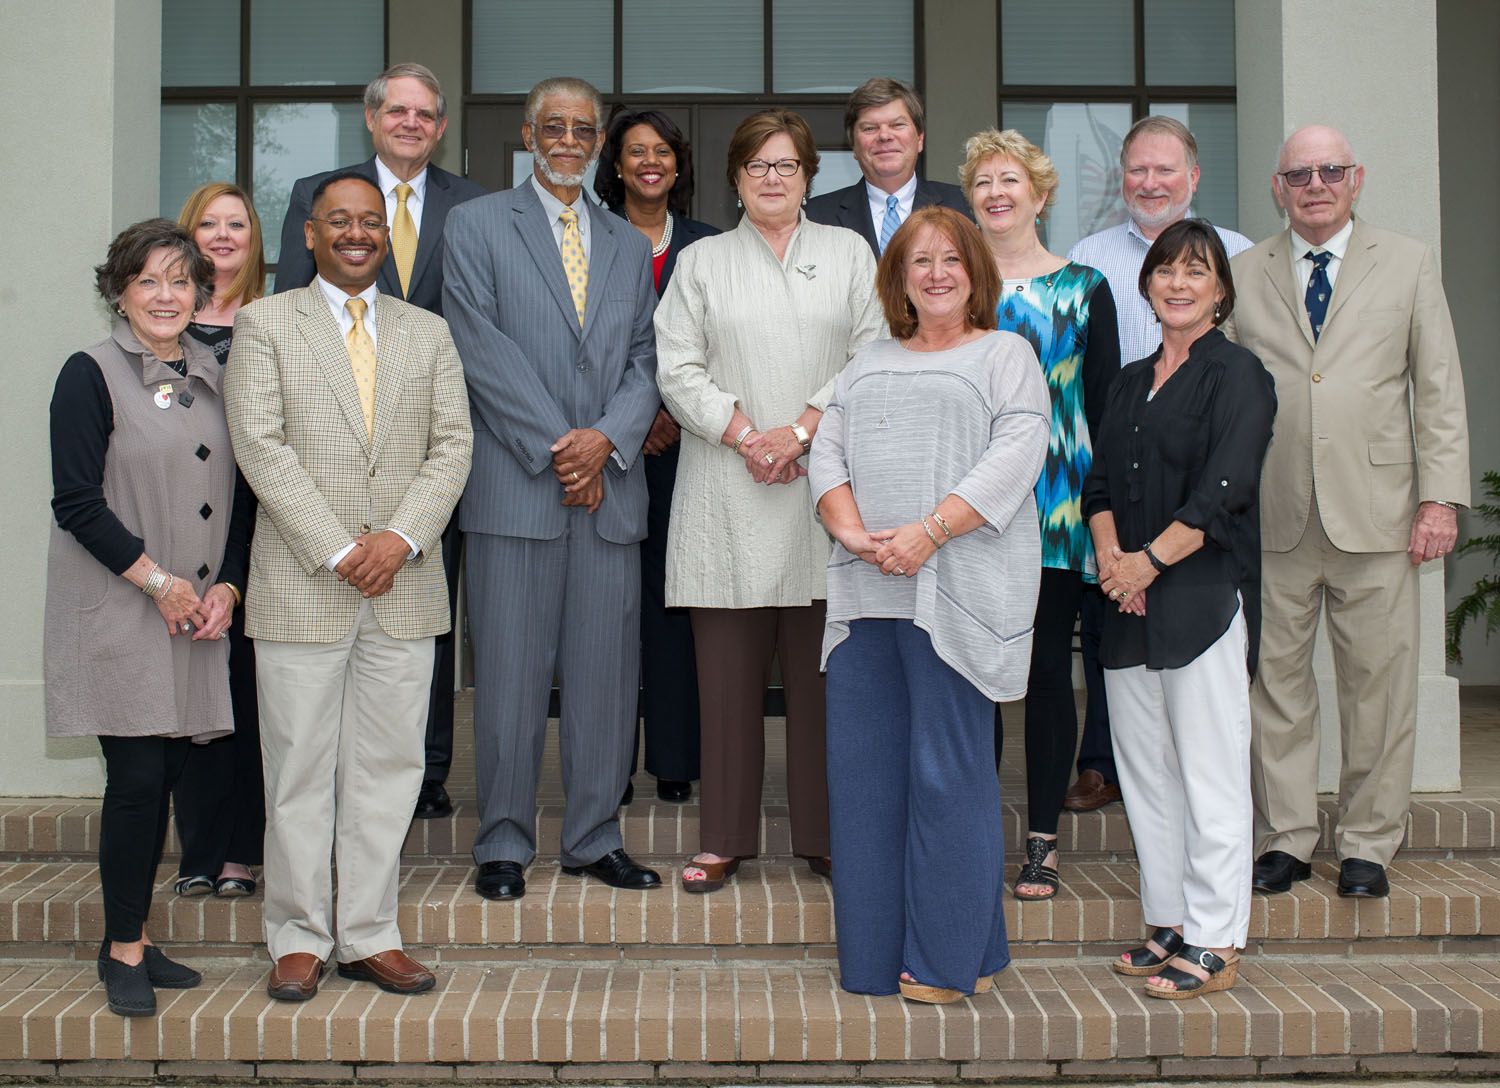 Members of the 2016 MDNHA Board of Directors and staff